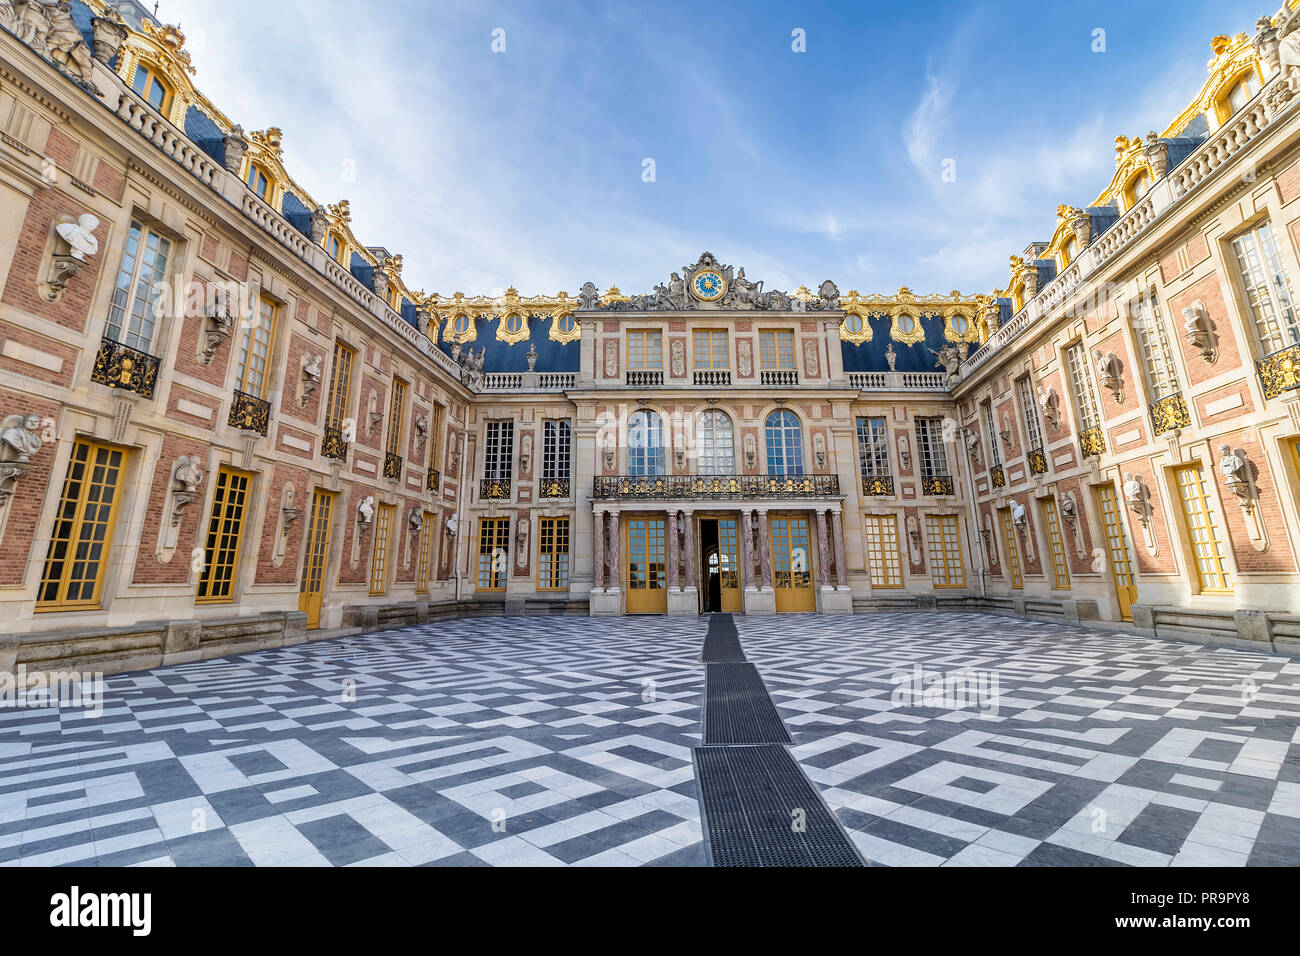 Facade of Chateau de Versailles (Palace of Versailles) near Paris. Palace Versailles was a royal chateau. - Stock Image